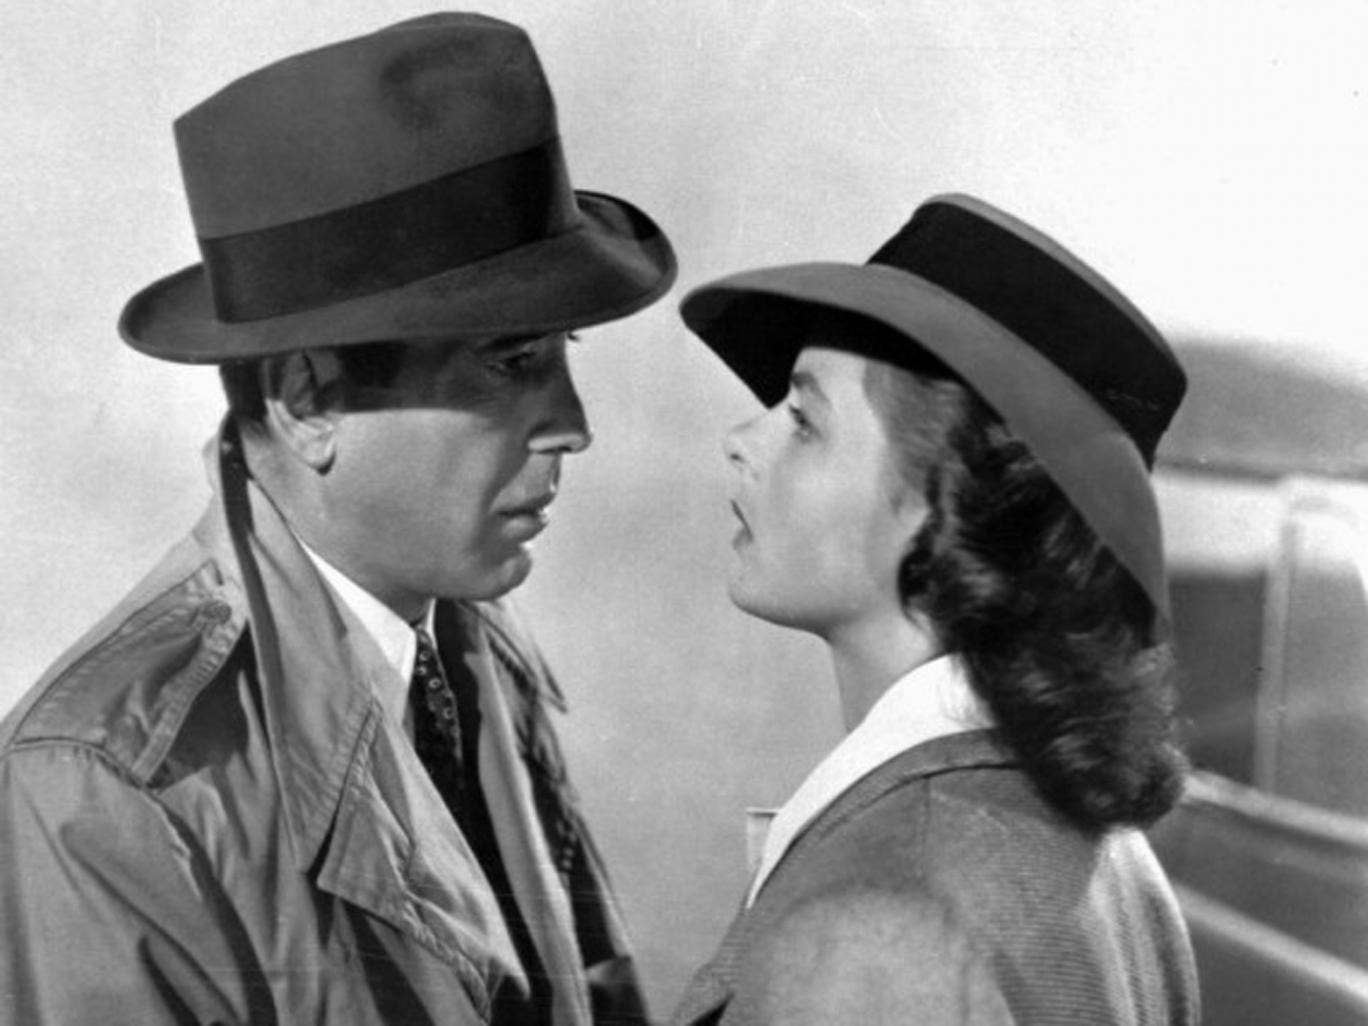 Casablanca crackles with wit, style and plenty of erotic energy